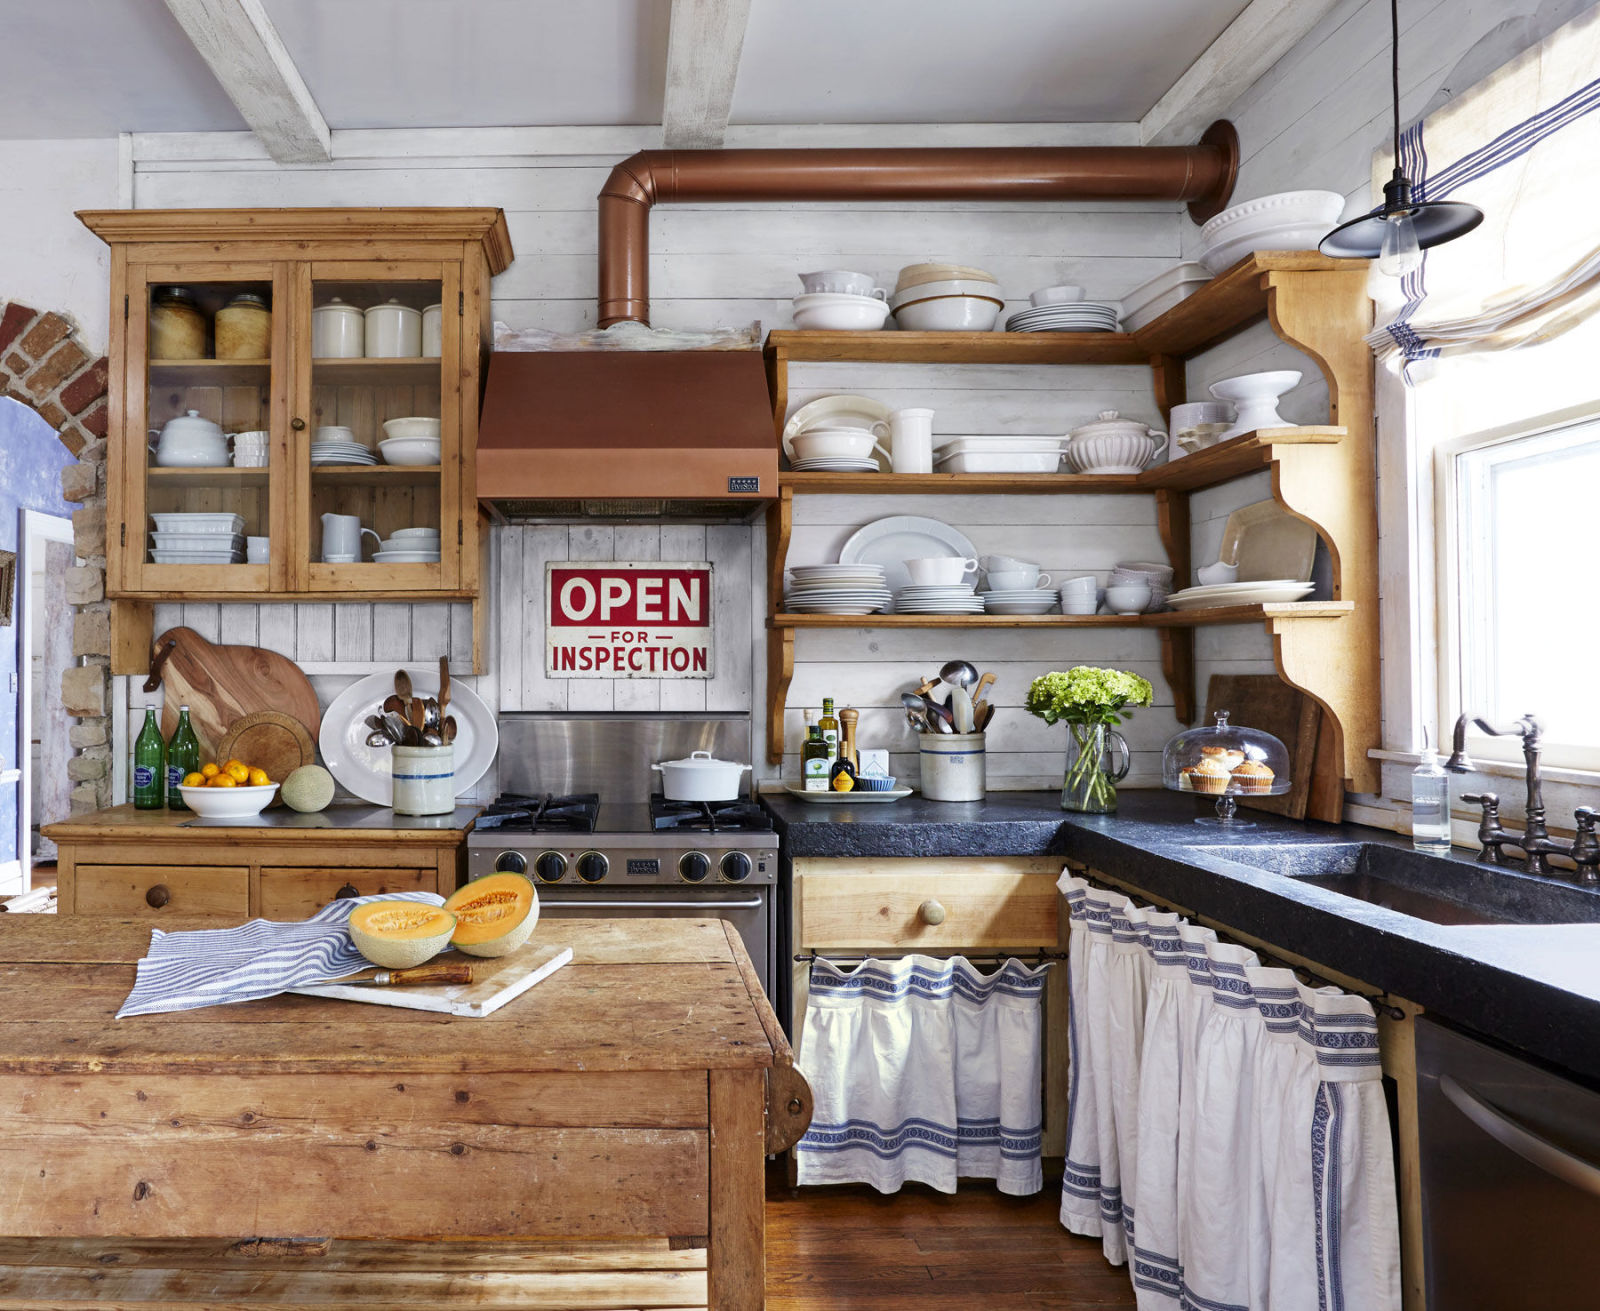 Farm Kitchen Decorating Ideas dianna palmer country kitchen - country kitchen decorating ideas